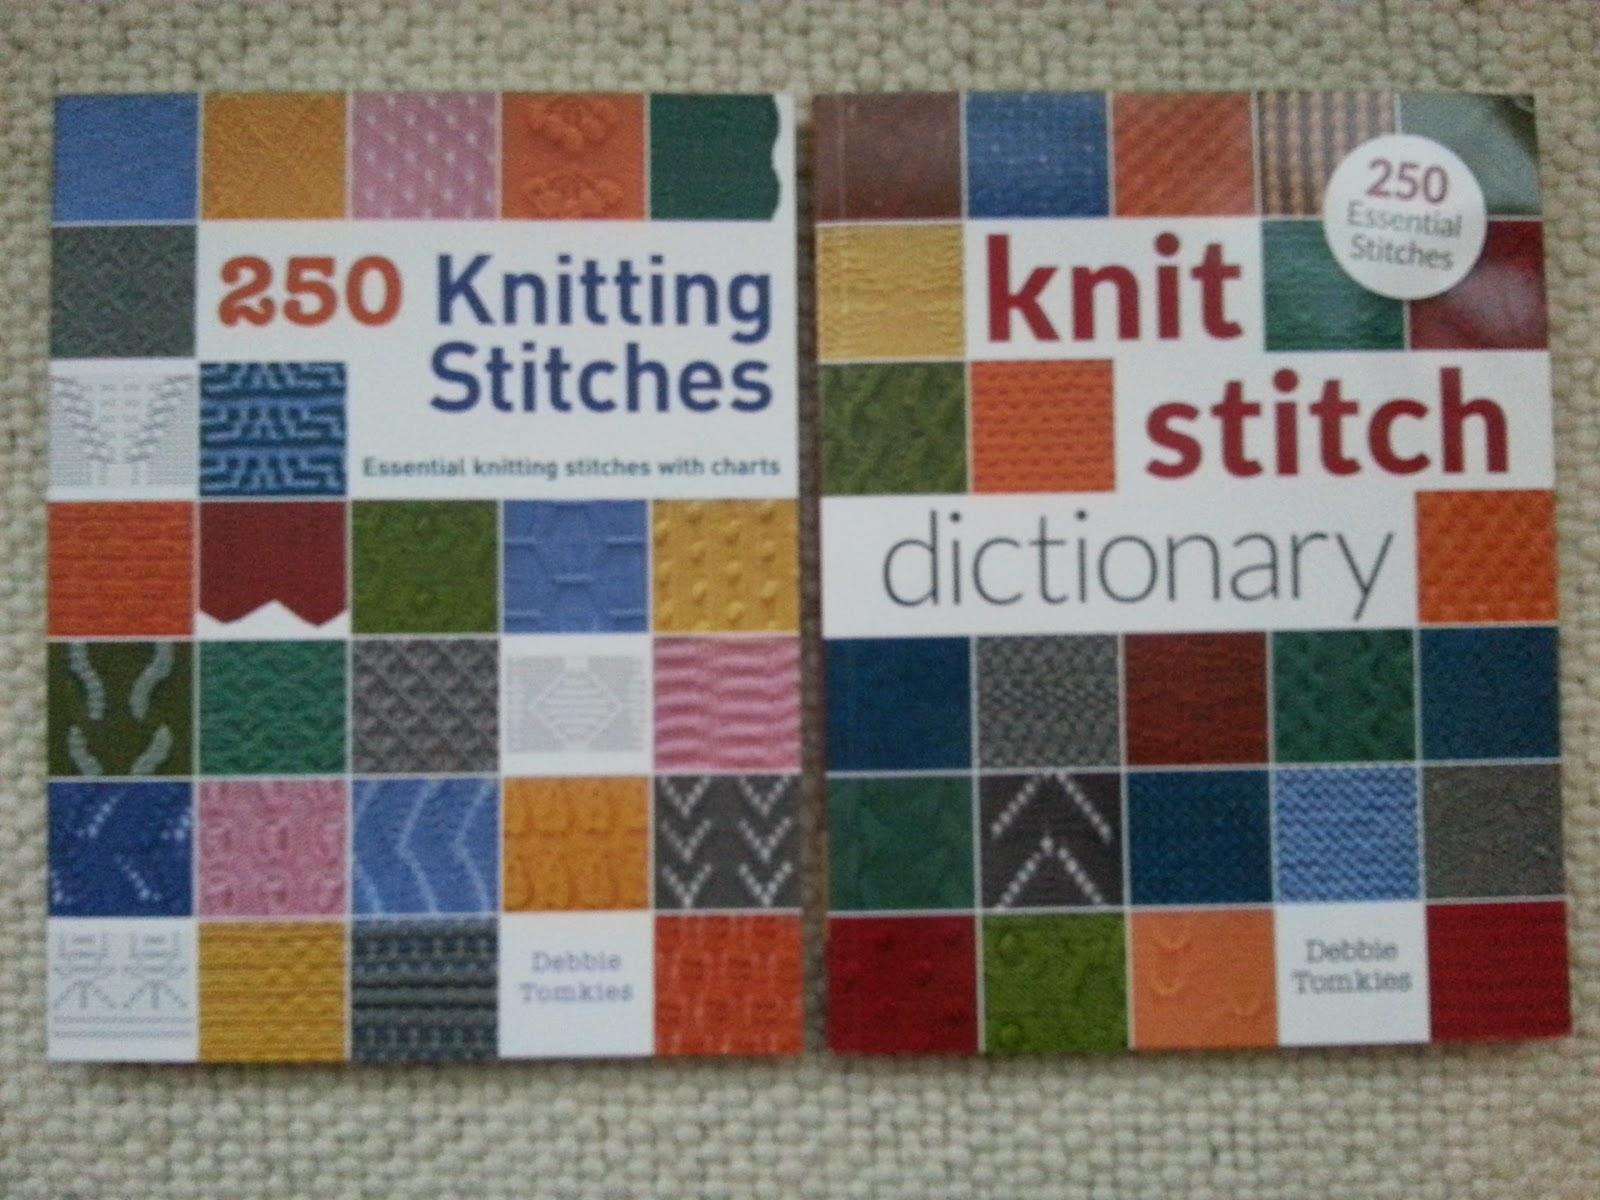 Hue & Dye: New year new book! - 250 Knitting Stitches by Debbie Tomkies